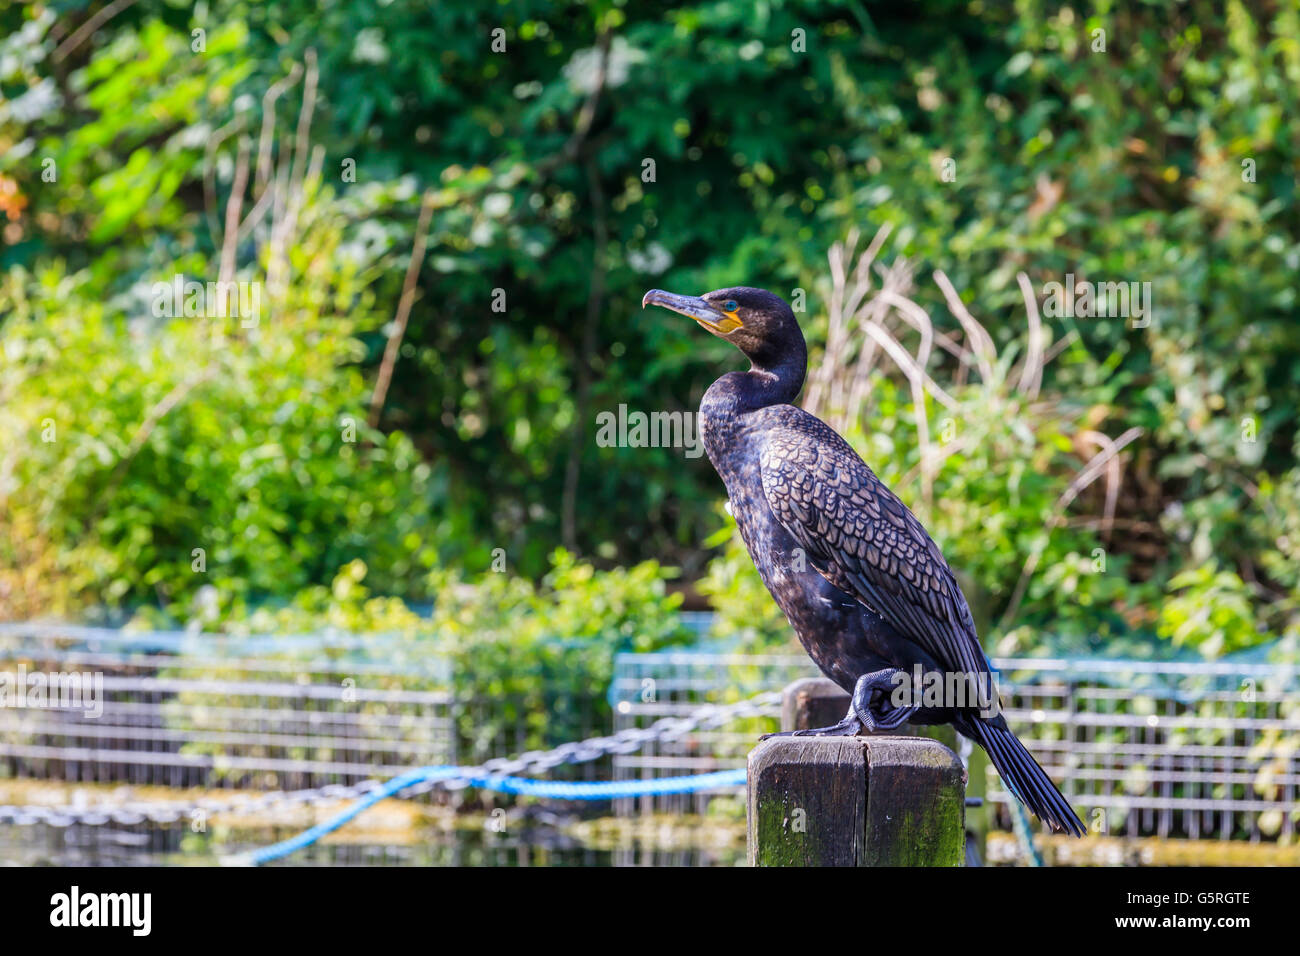 A lone Shag smaller cousin of the Cormorant enjoying the sunshine in Hyde Park London - Stock Image